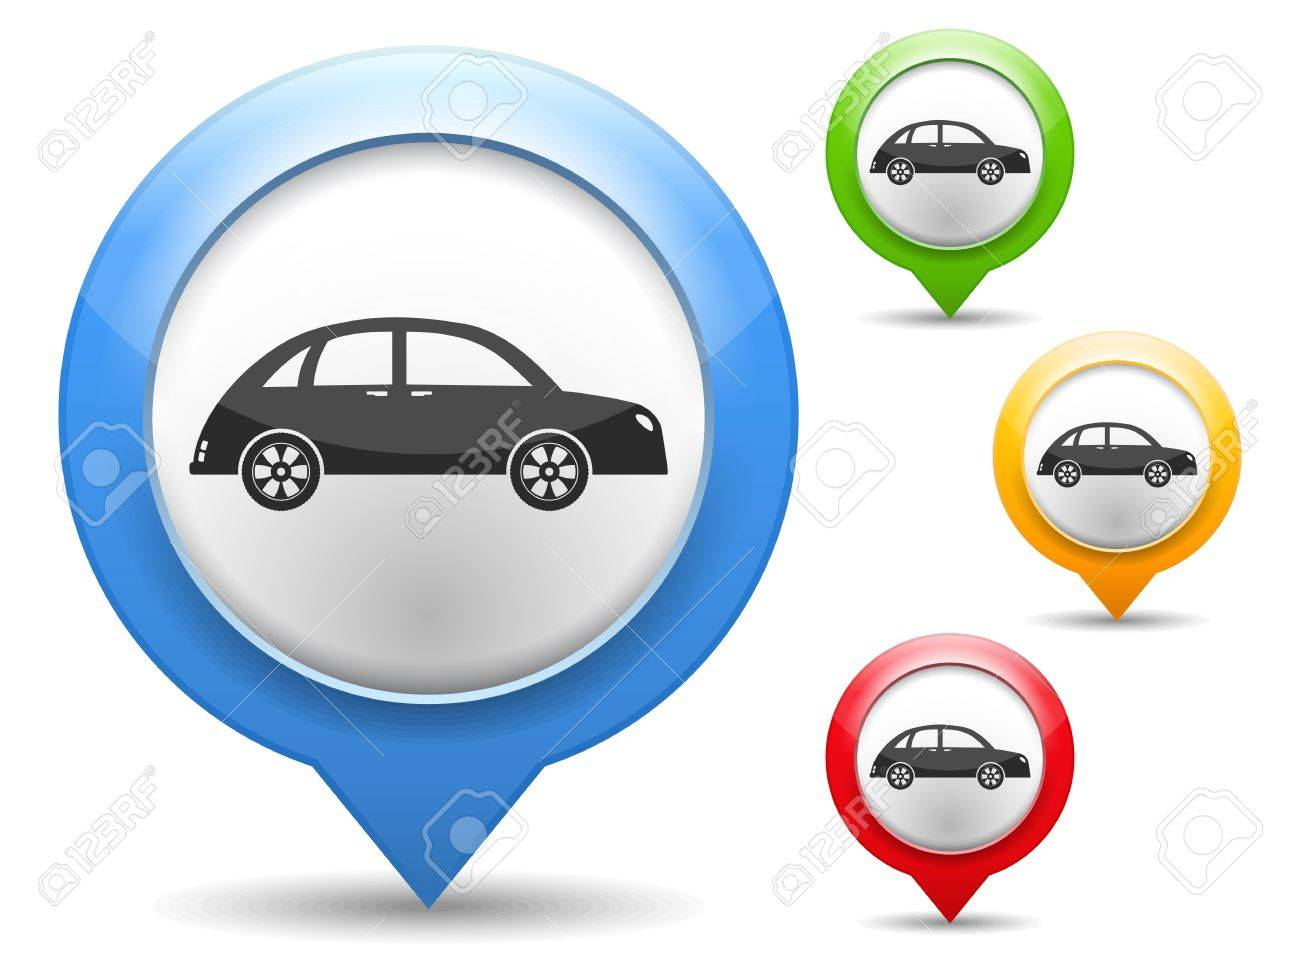 Map Marker With Icon Of A Retro Car Royalty Free Cliparts, Vectors on windows car icon, microsoft car icon, google earth funny coordinates, google map custom pushpin, red and blue squares icon, google map navigation icons, google earth street view funny, google map pin icon, google map car blue, position map icon, bing maps car icon,